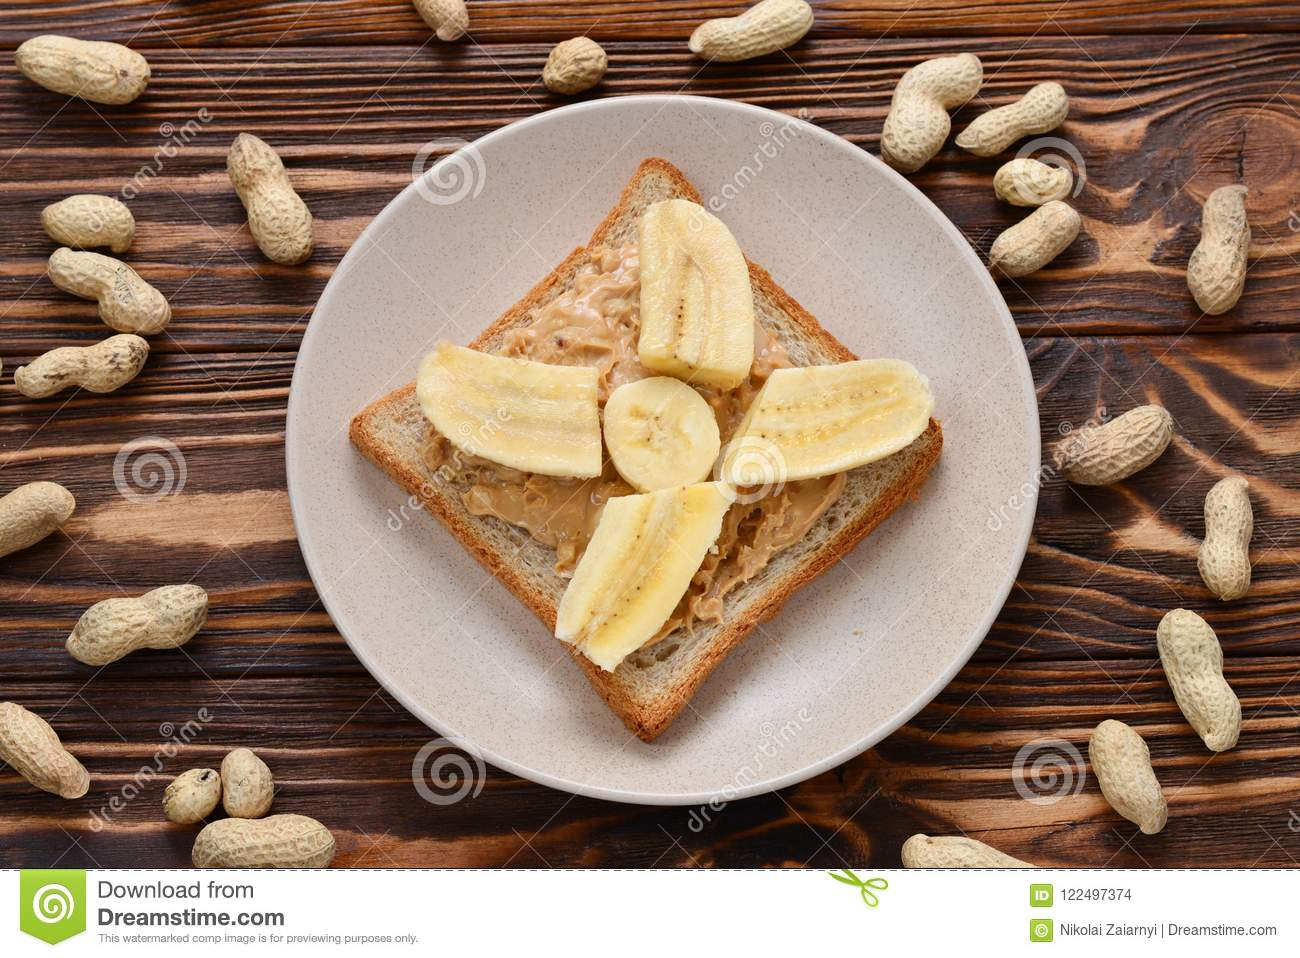 Peanut butter toast with banana slices